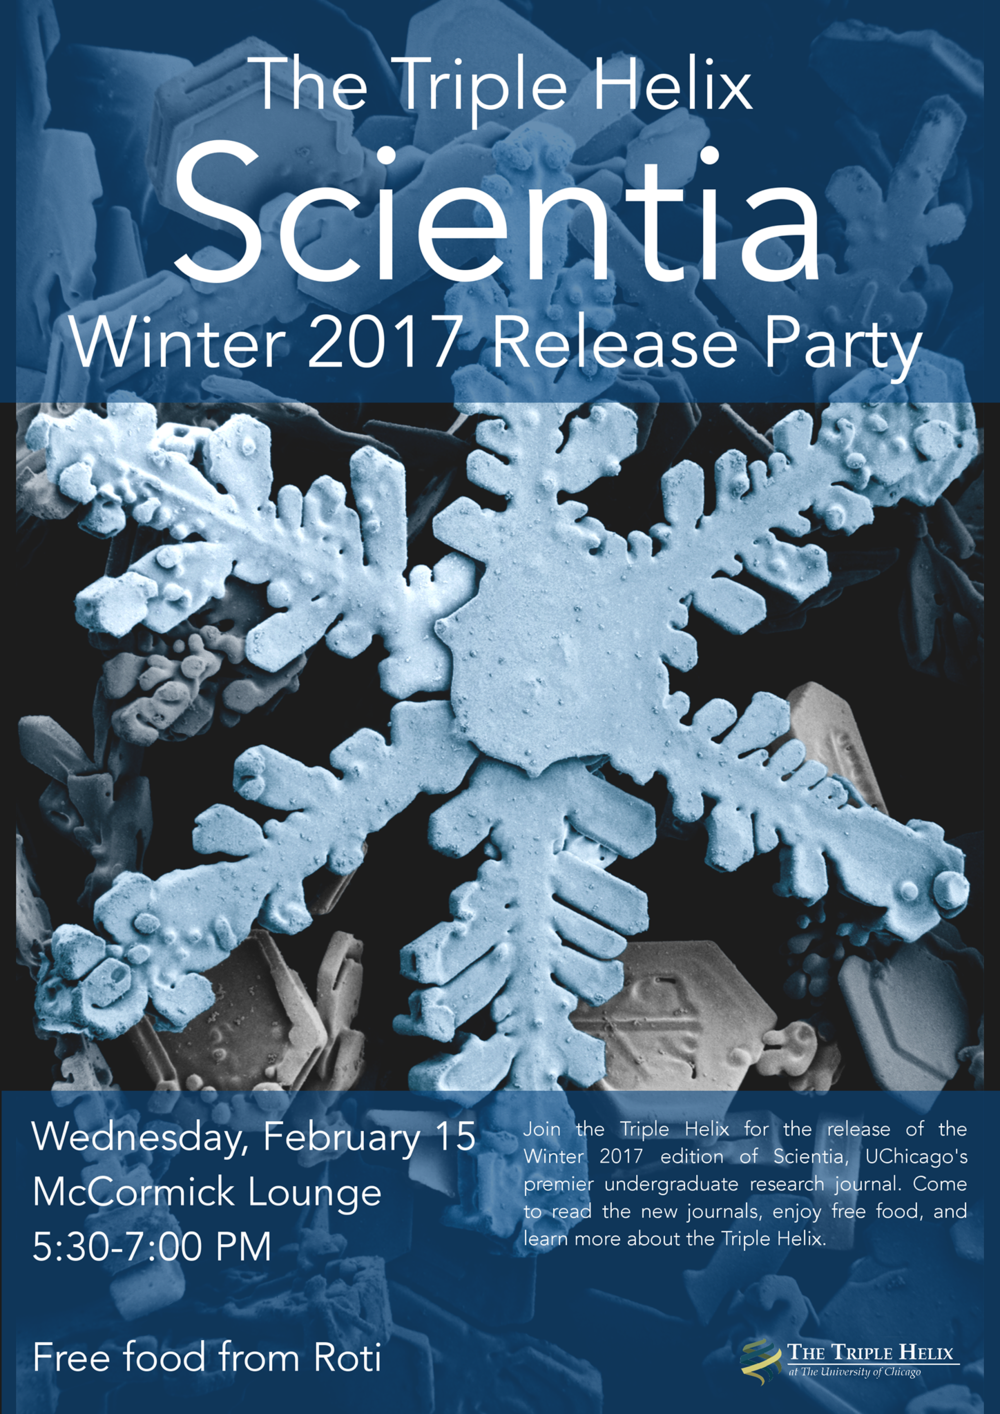 scientia 2017 winter release